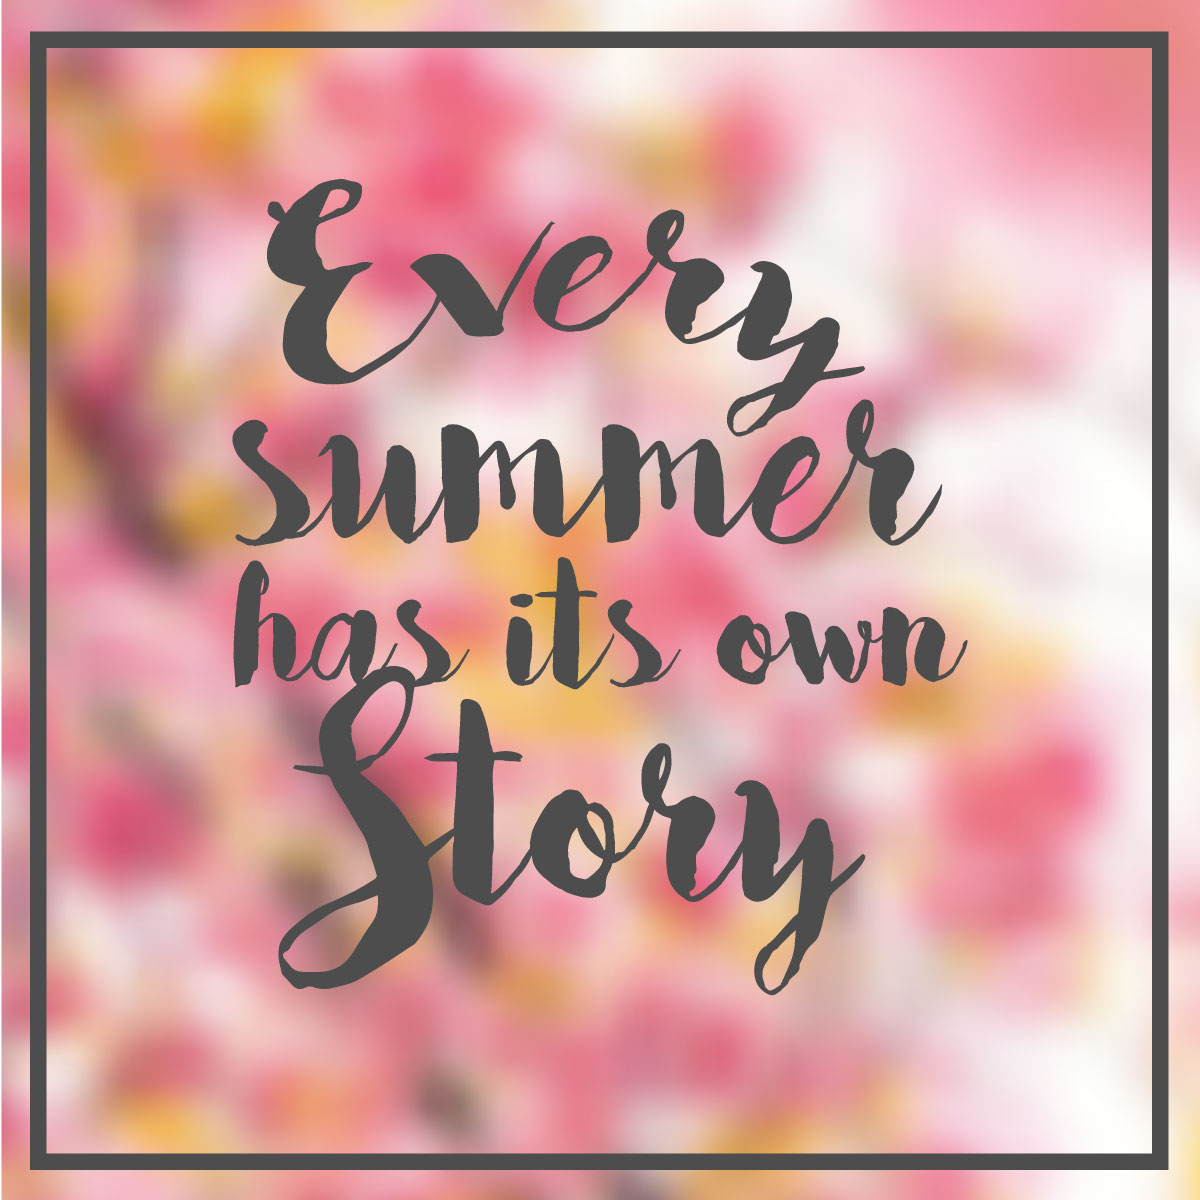 Marvelous Every Summer Does Indeed Have Its Own Story.